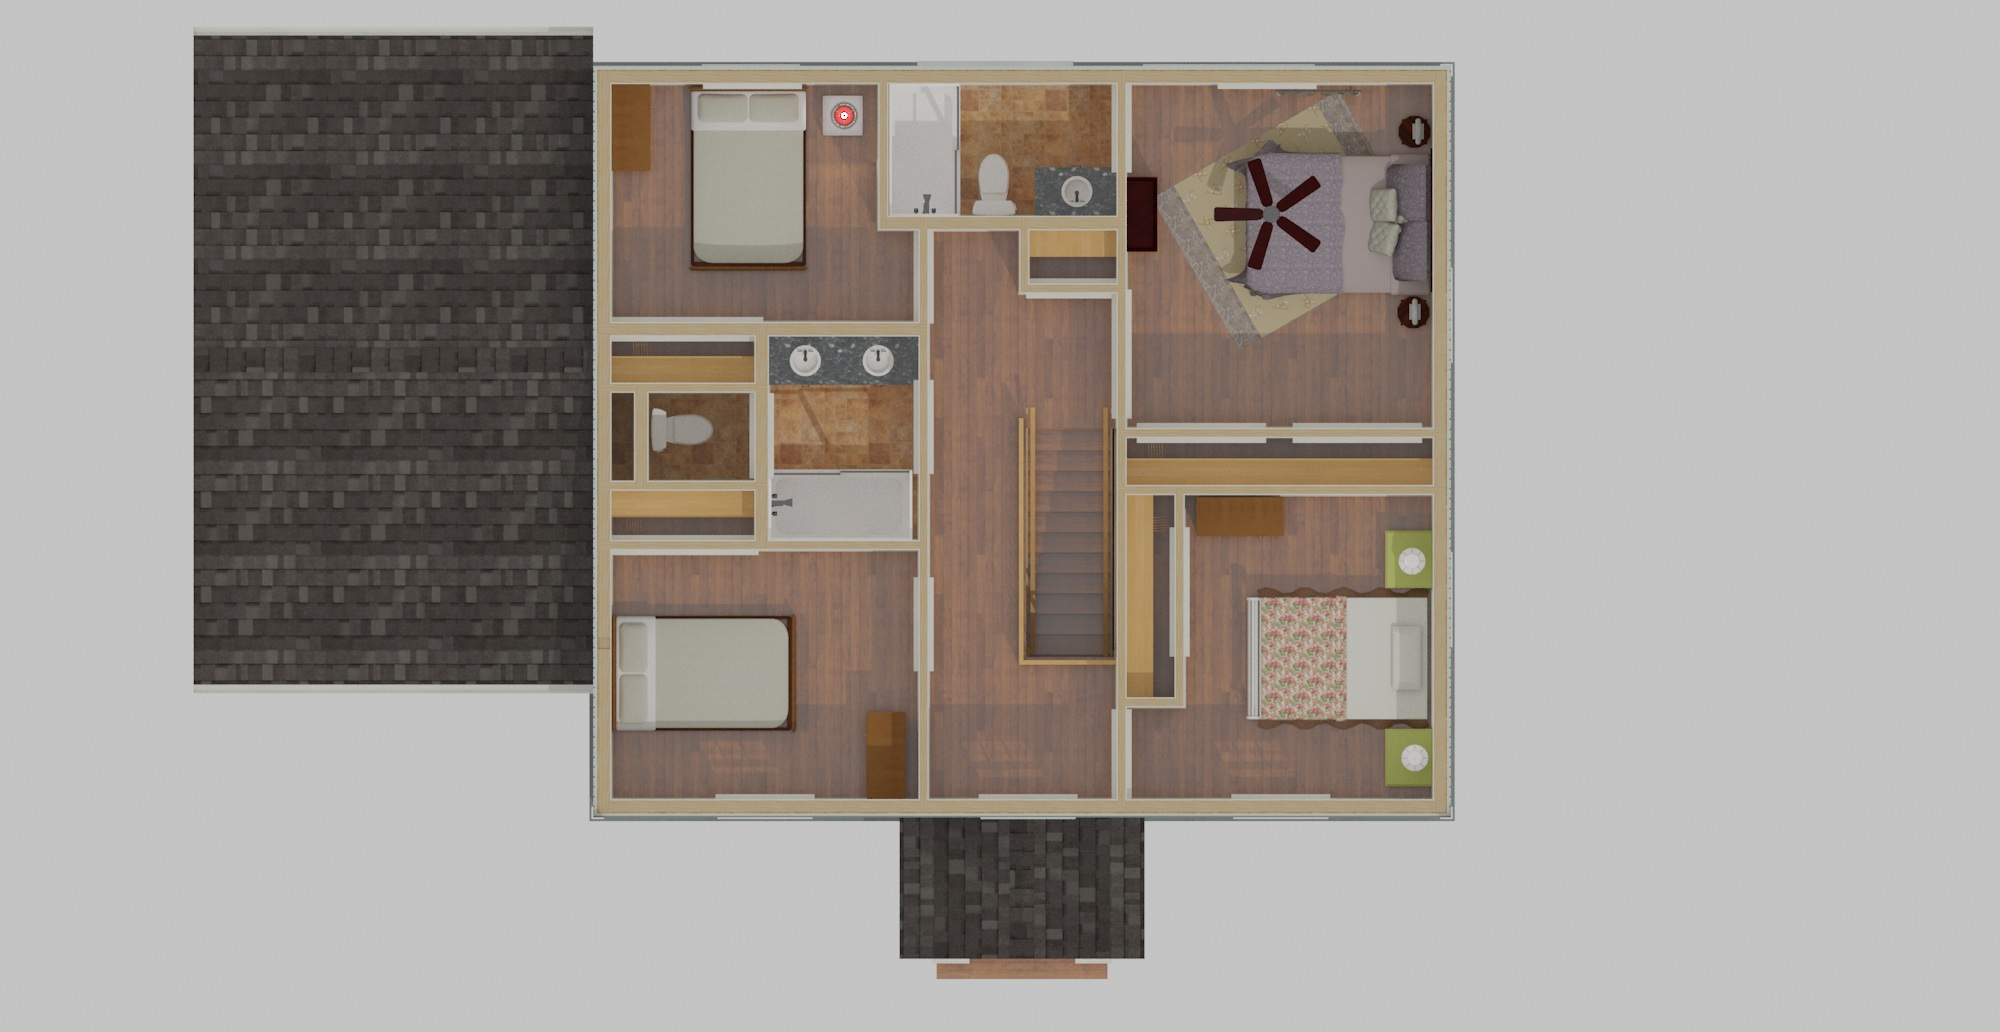 Plan Layout 2nd Floor